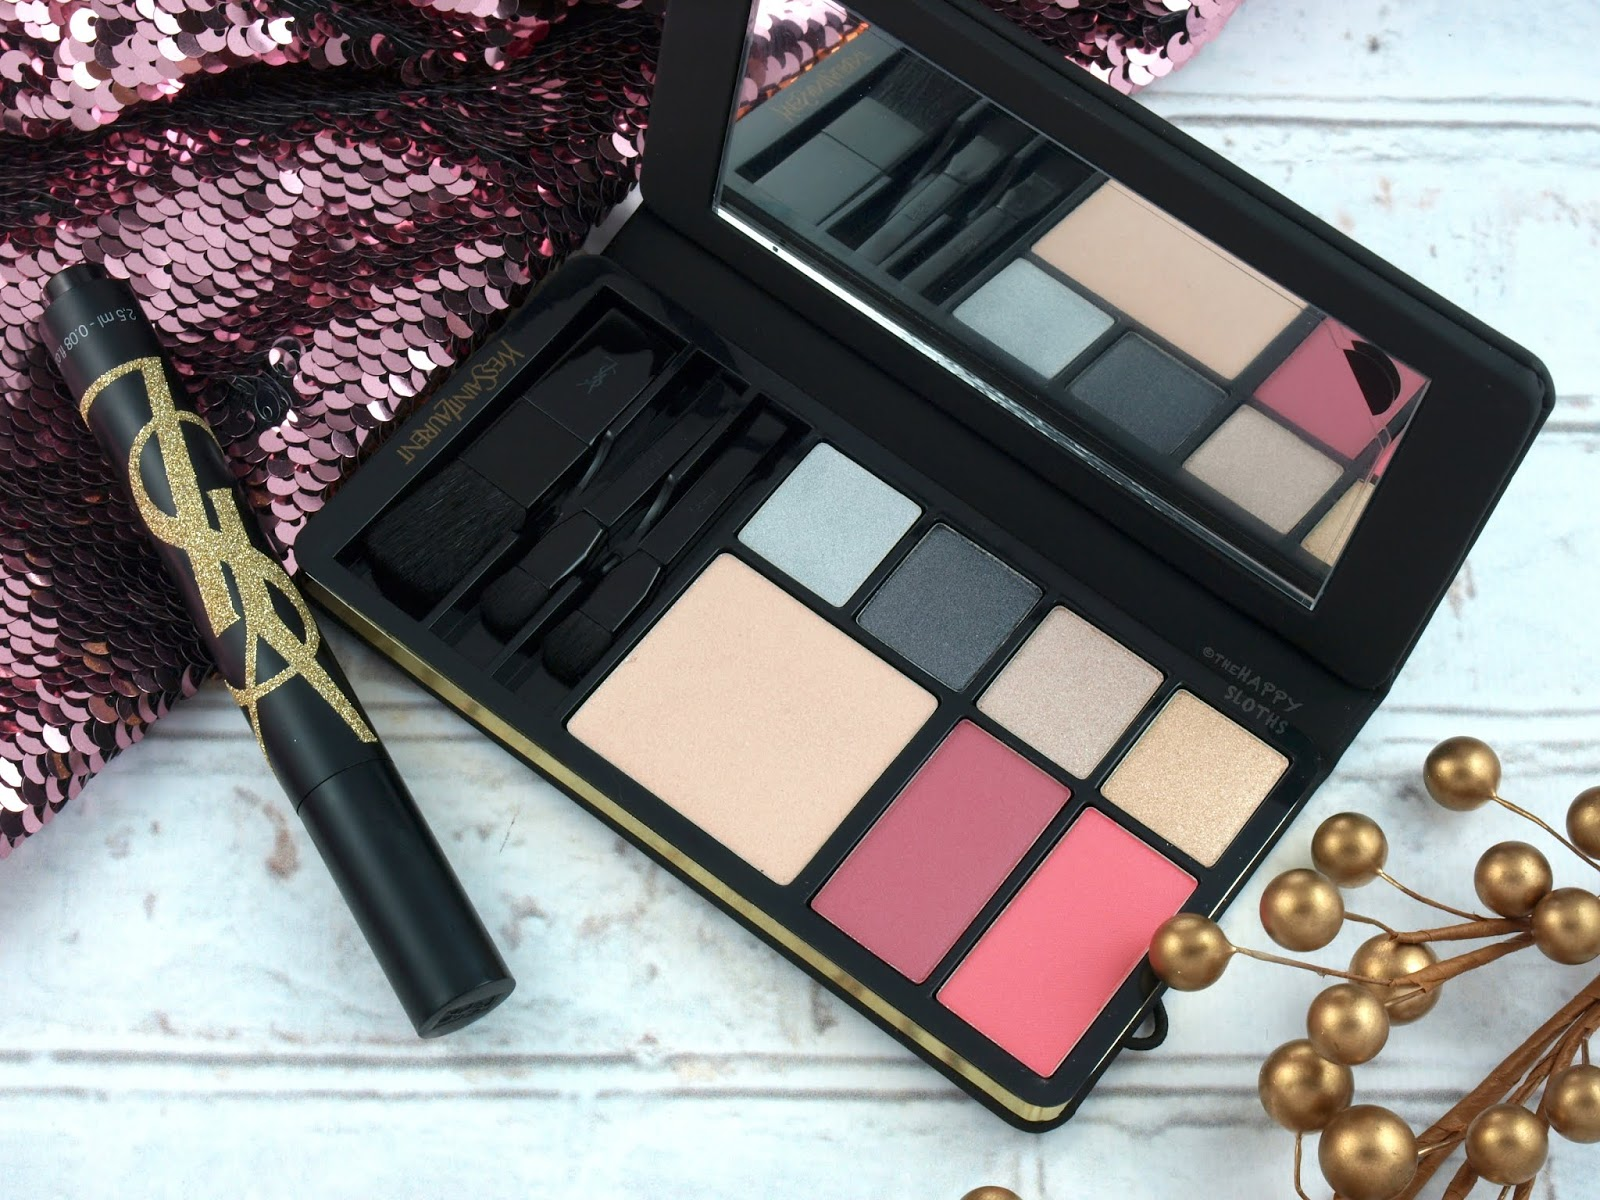 Yves Saint Laurent | Holiday 2018 Gold Attraction Makeup Palette: Review and Swatches